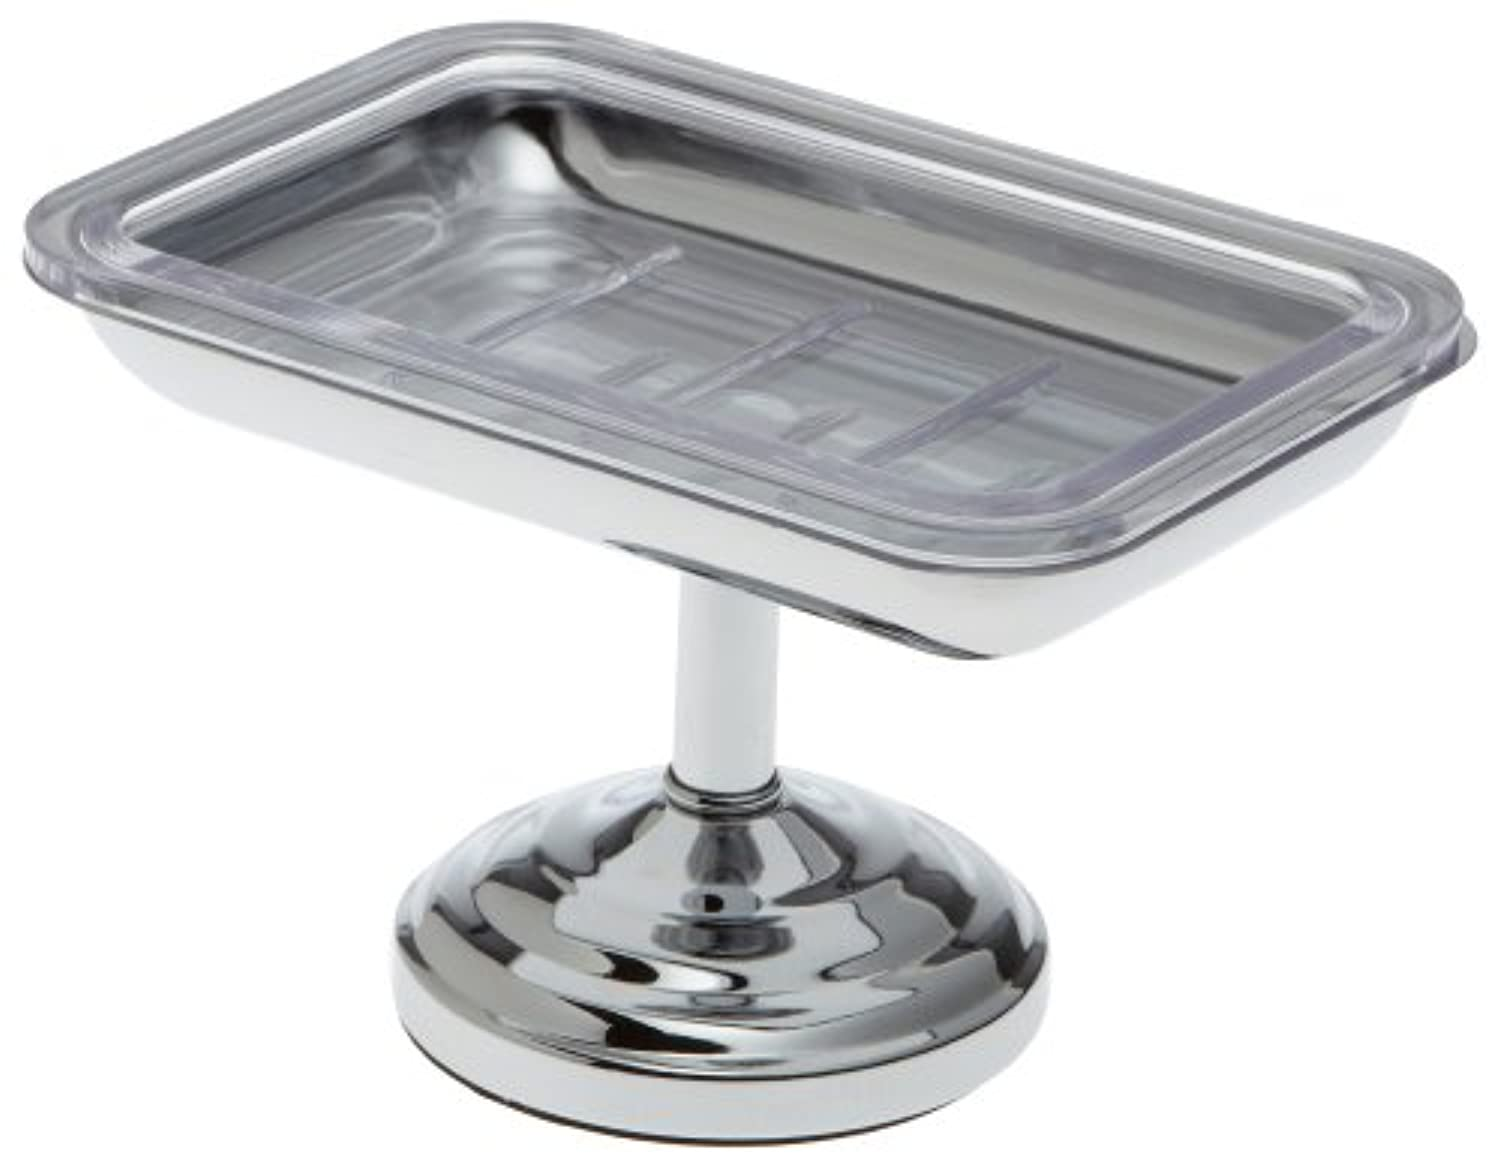 Taymor Pedestal Soap Dish, Chrome by Taymor Industries